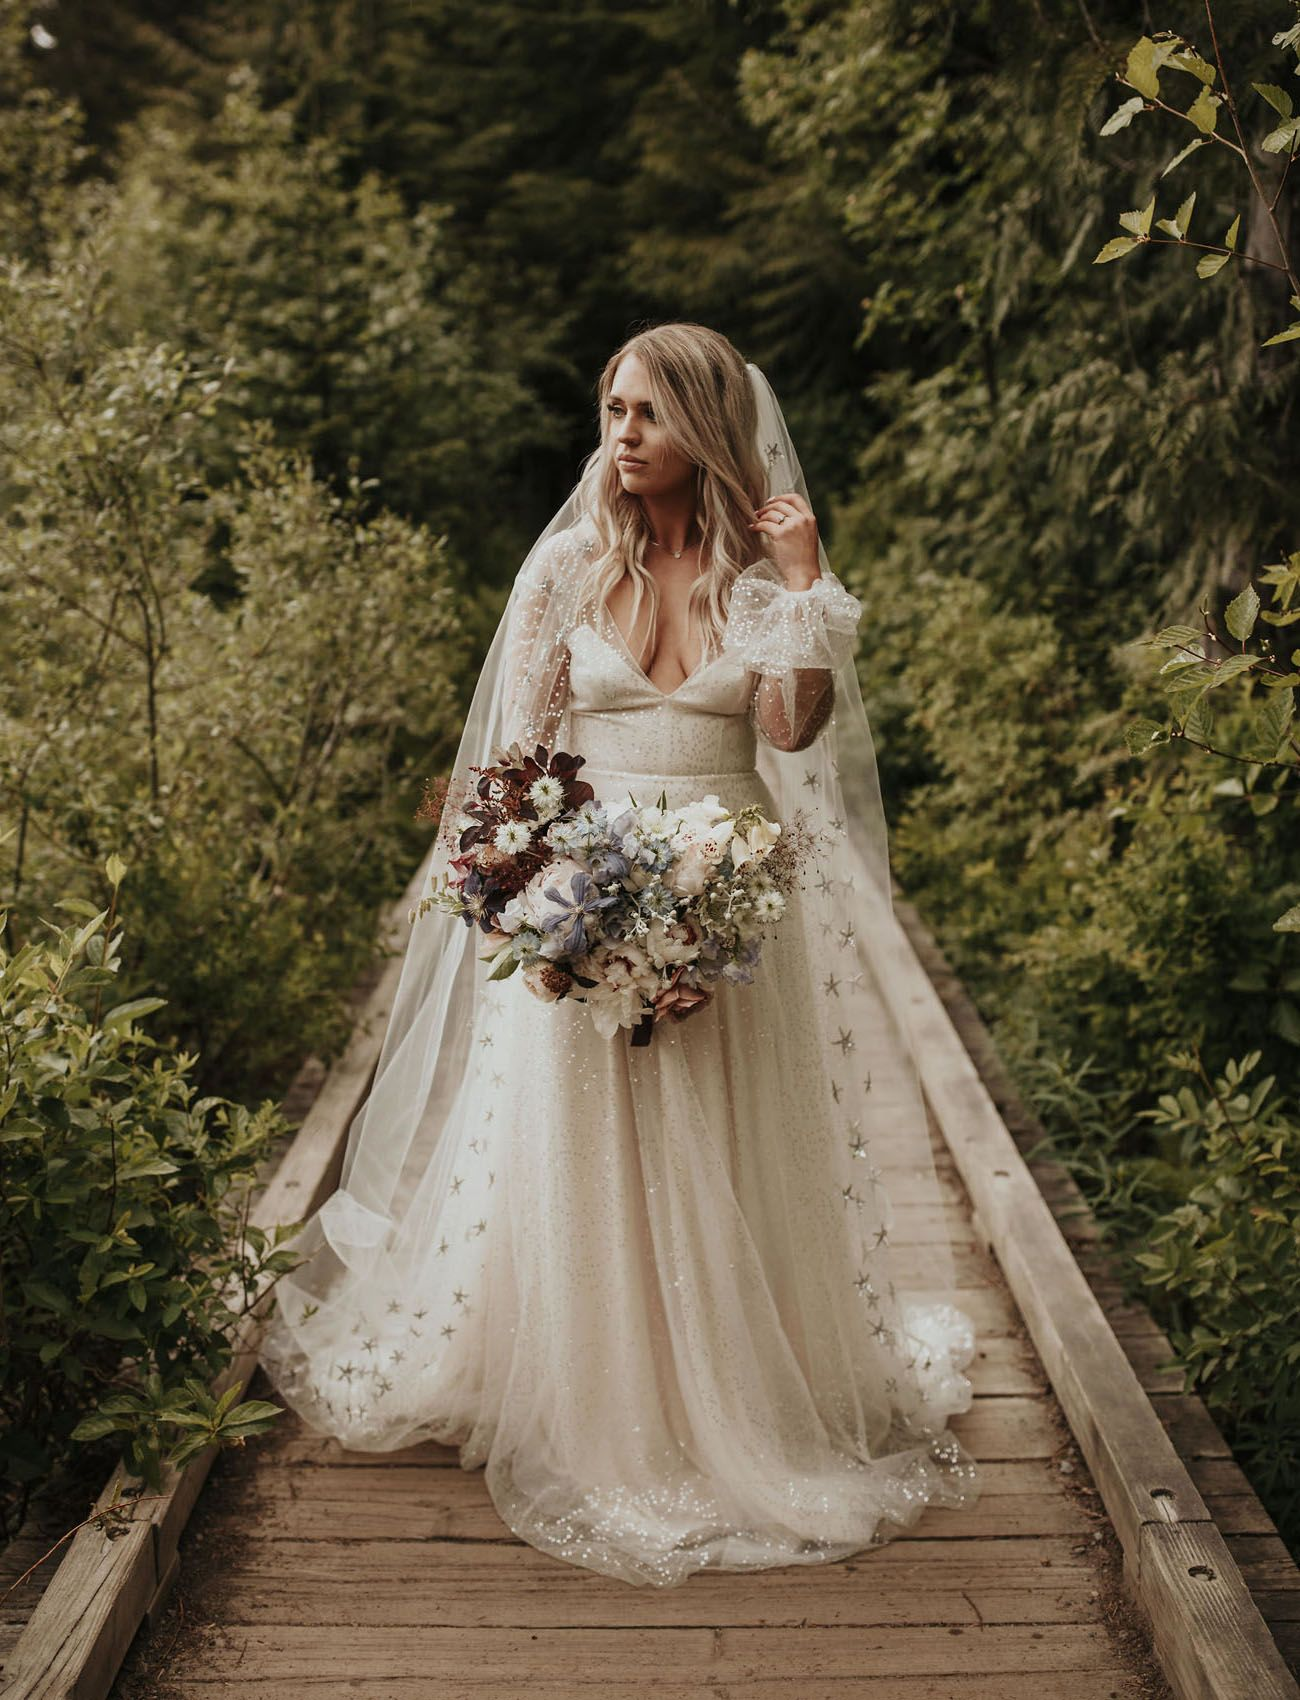 Dye wedding dress after wedding  America the Beautiful A Moody  Wild th of July for Those with